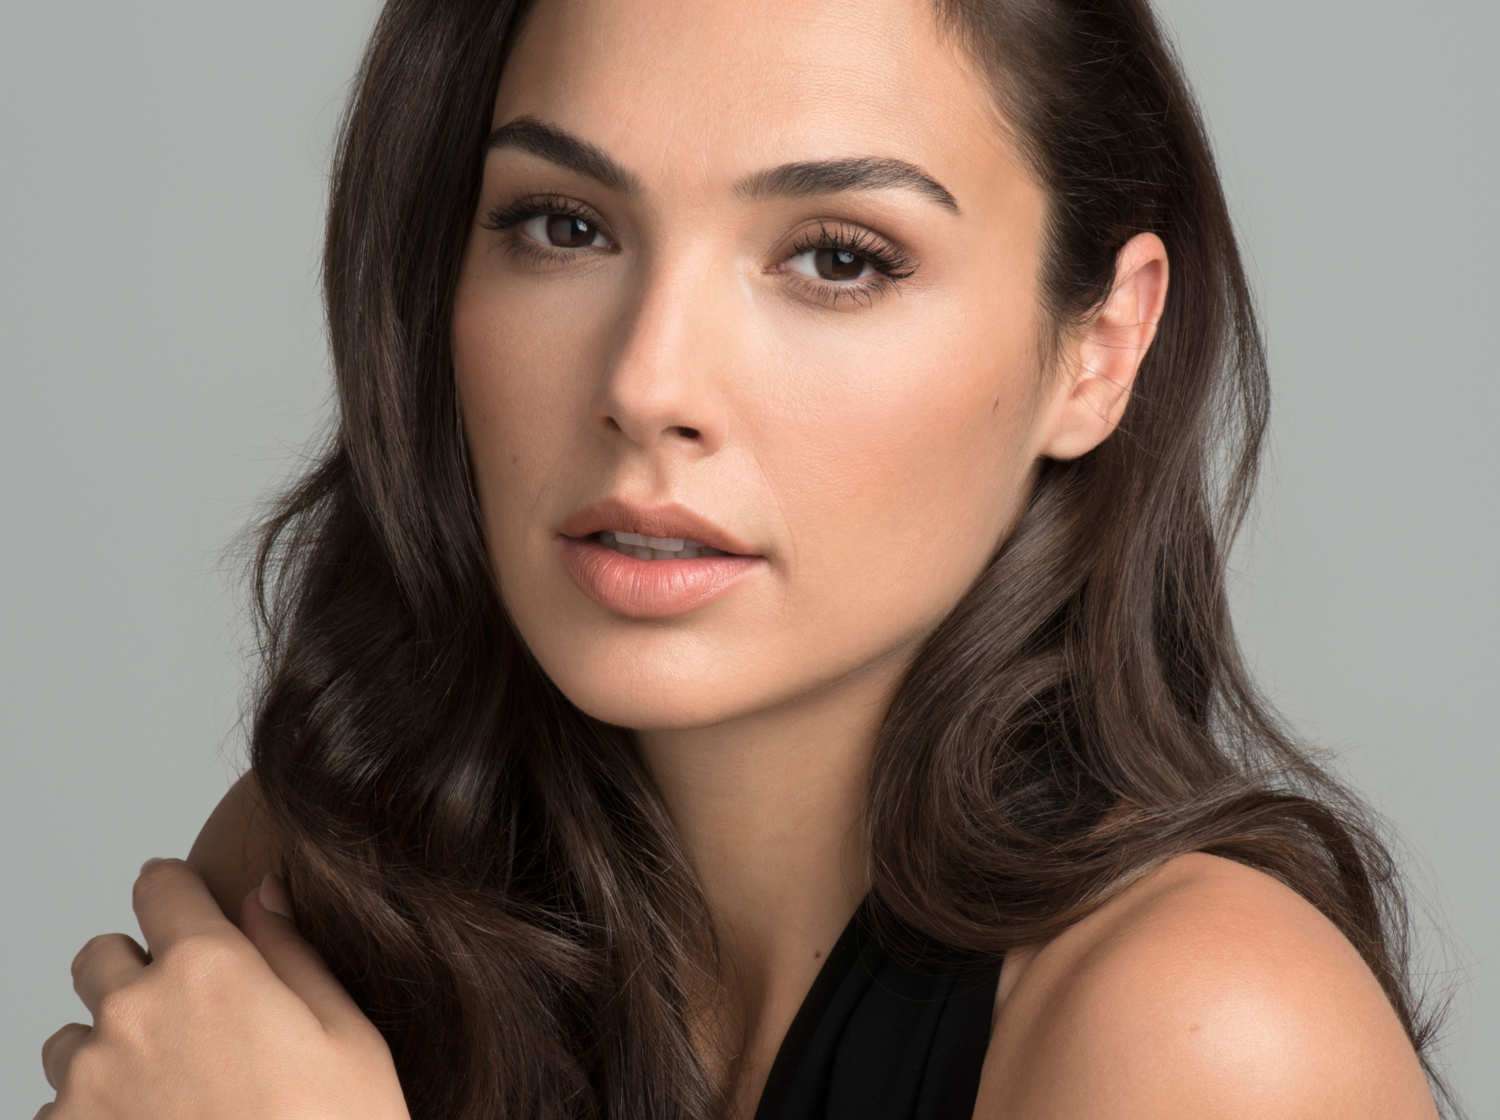 5 FACTS YOU NEVER KNEW ABOUT GAL GADOT